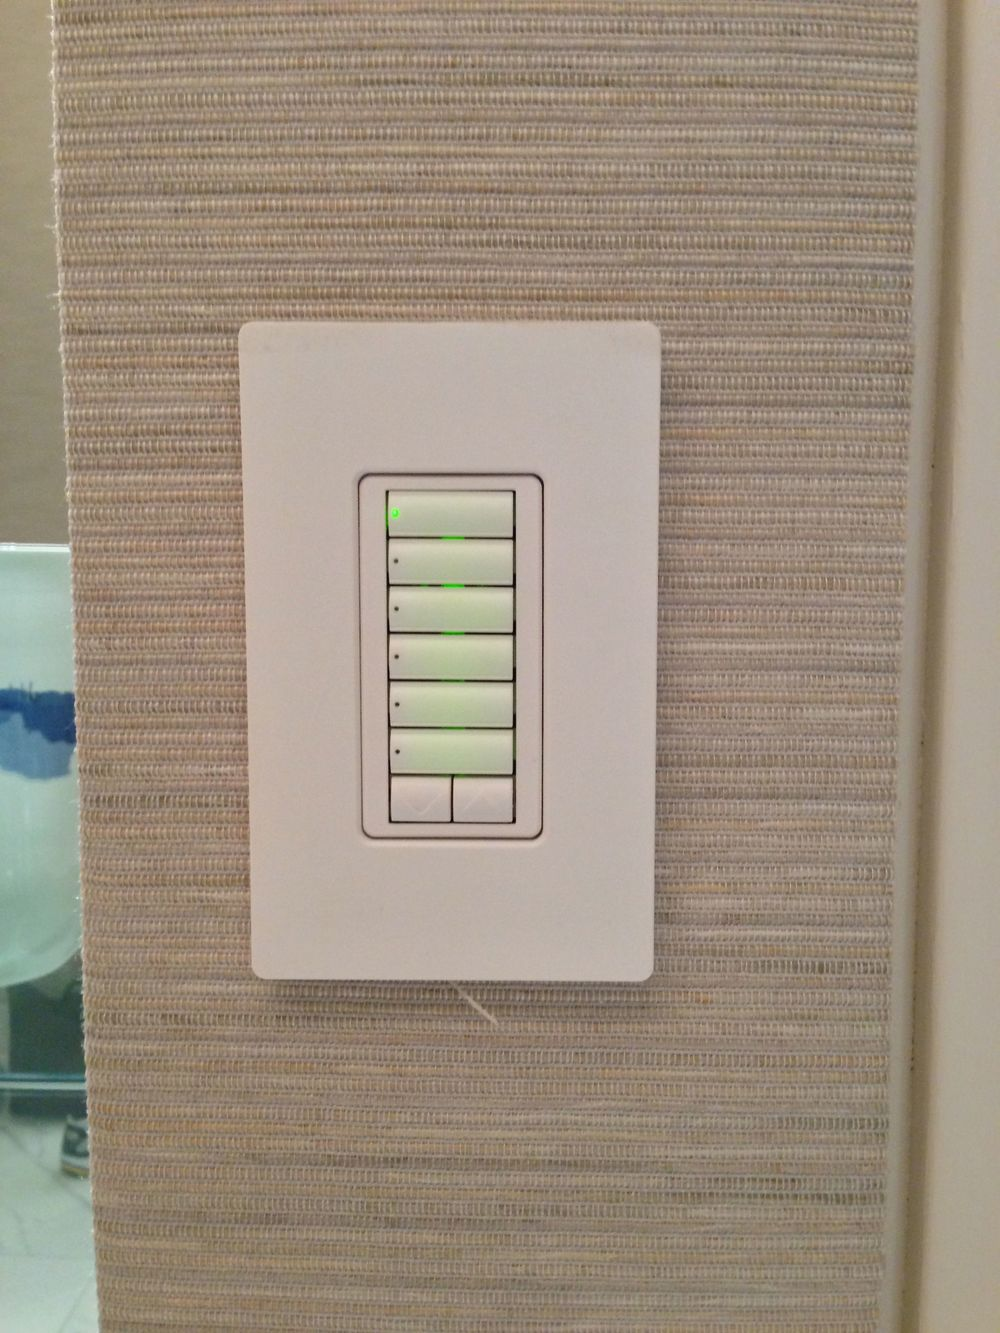 The Lutron Homeworks QS system provides lighting control via keypads throughout the residence.